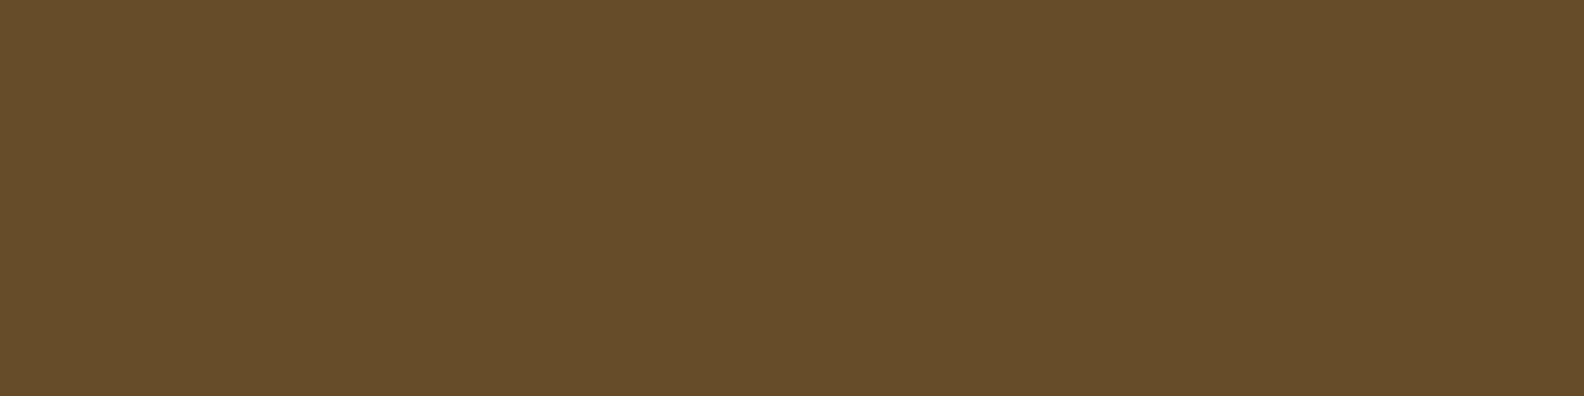 1584x396 Donkey Brown Solid Color Background